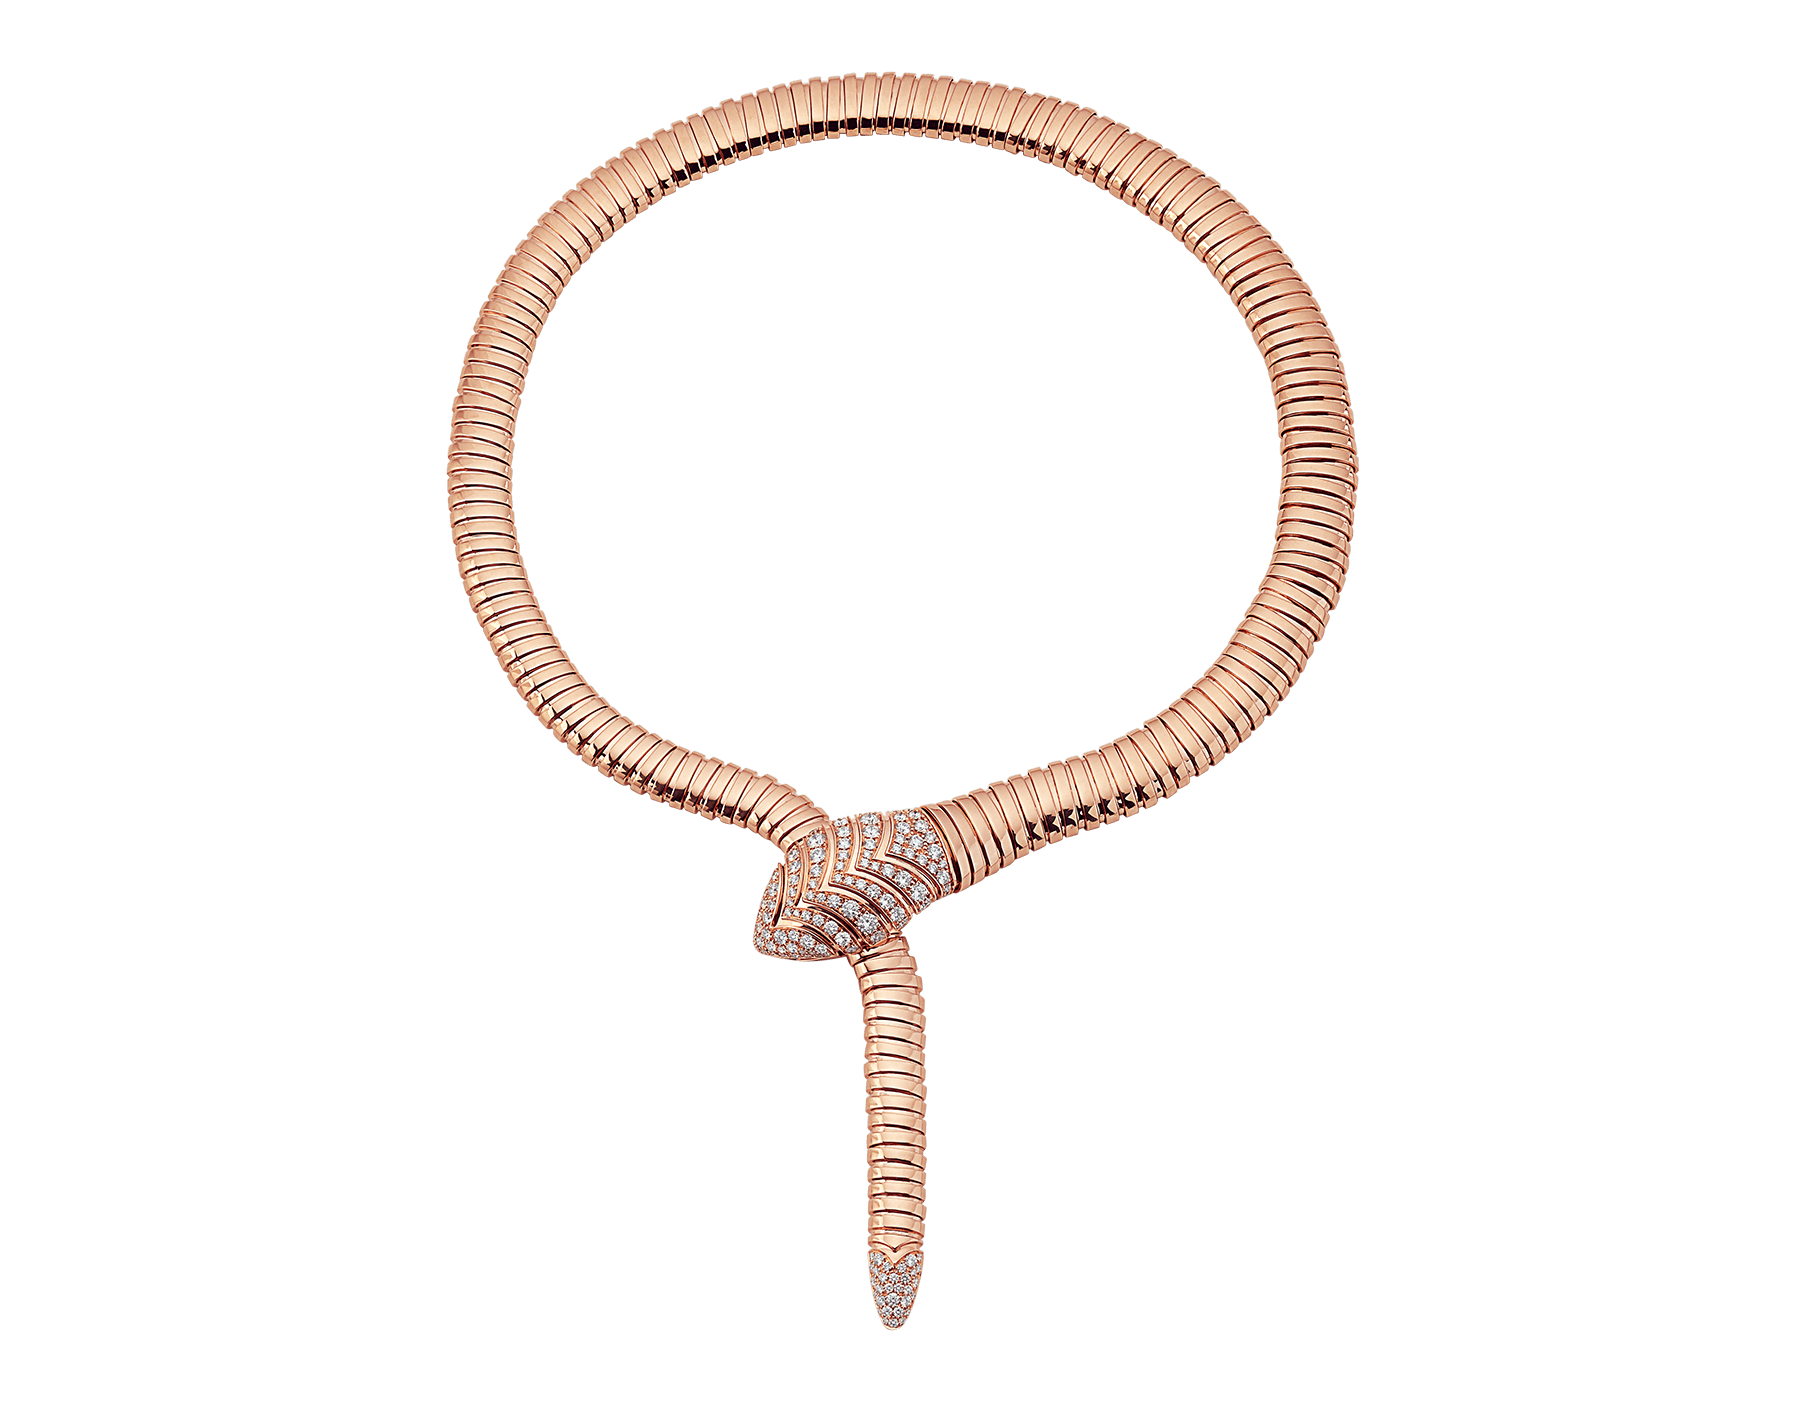 Collier Serpenti Tubogas en or rose 18 K avec pavé diamants sur la queue et la tête. 350680 image 1